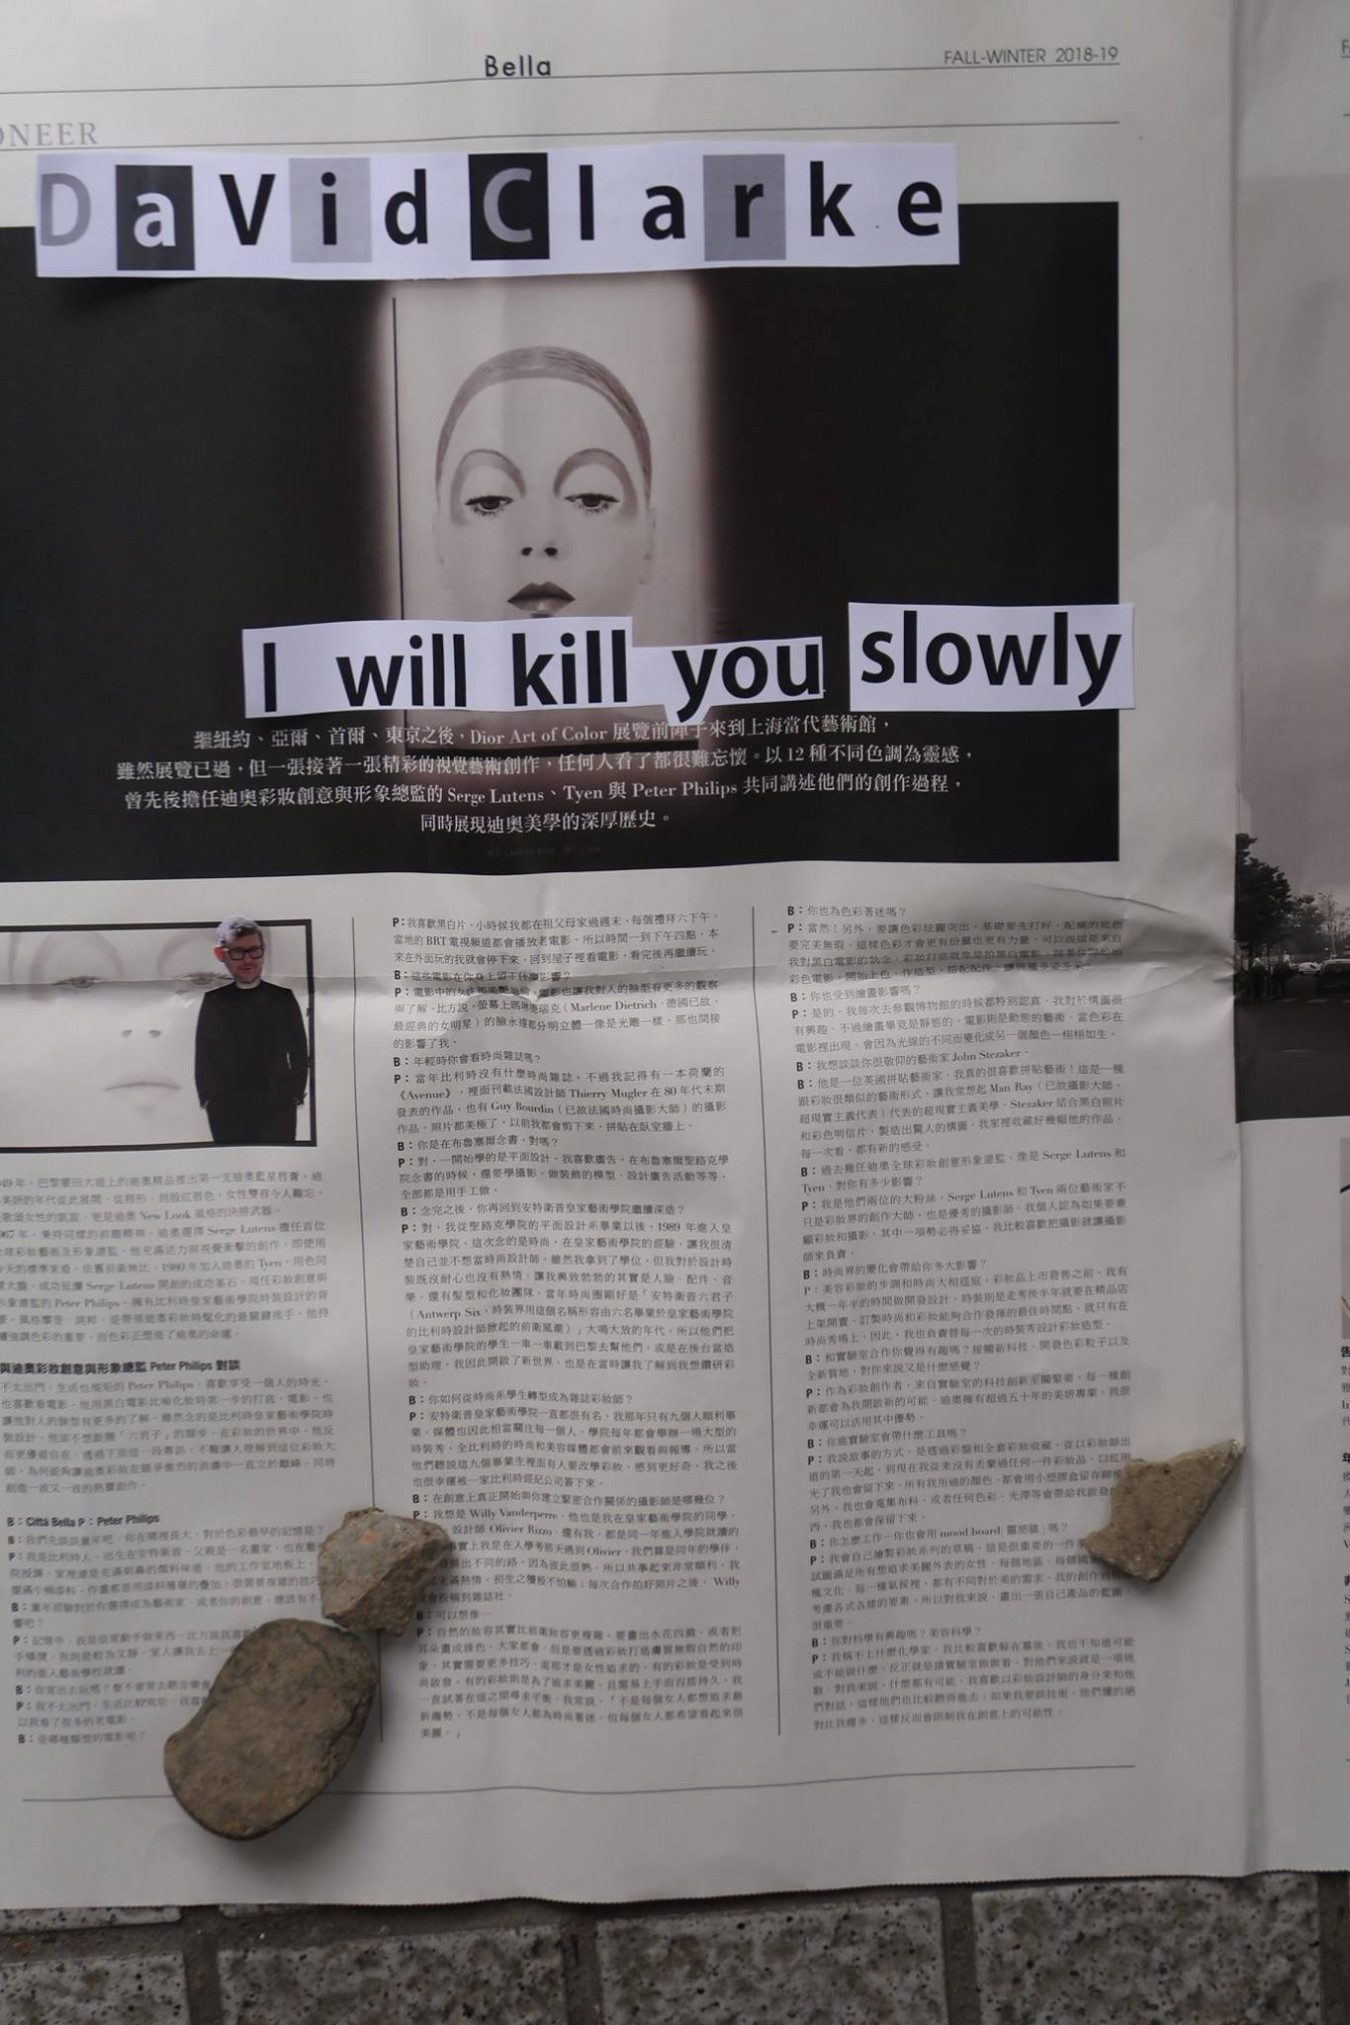 Image of work from a workshop in Taiwan; student leaves anonymous death threat. I will kill you slowly.